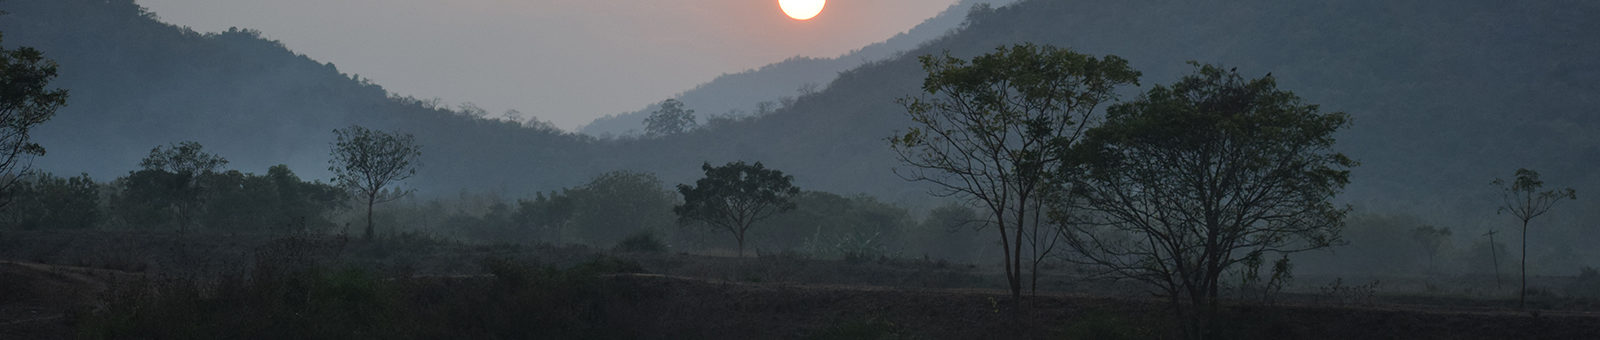 Sunset at Saluapalli Forest Range